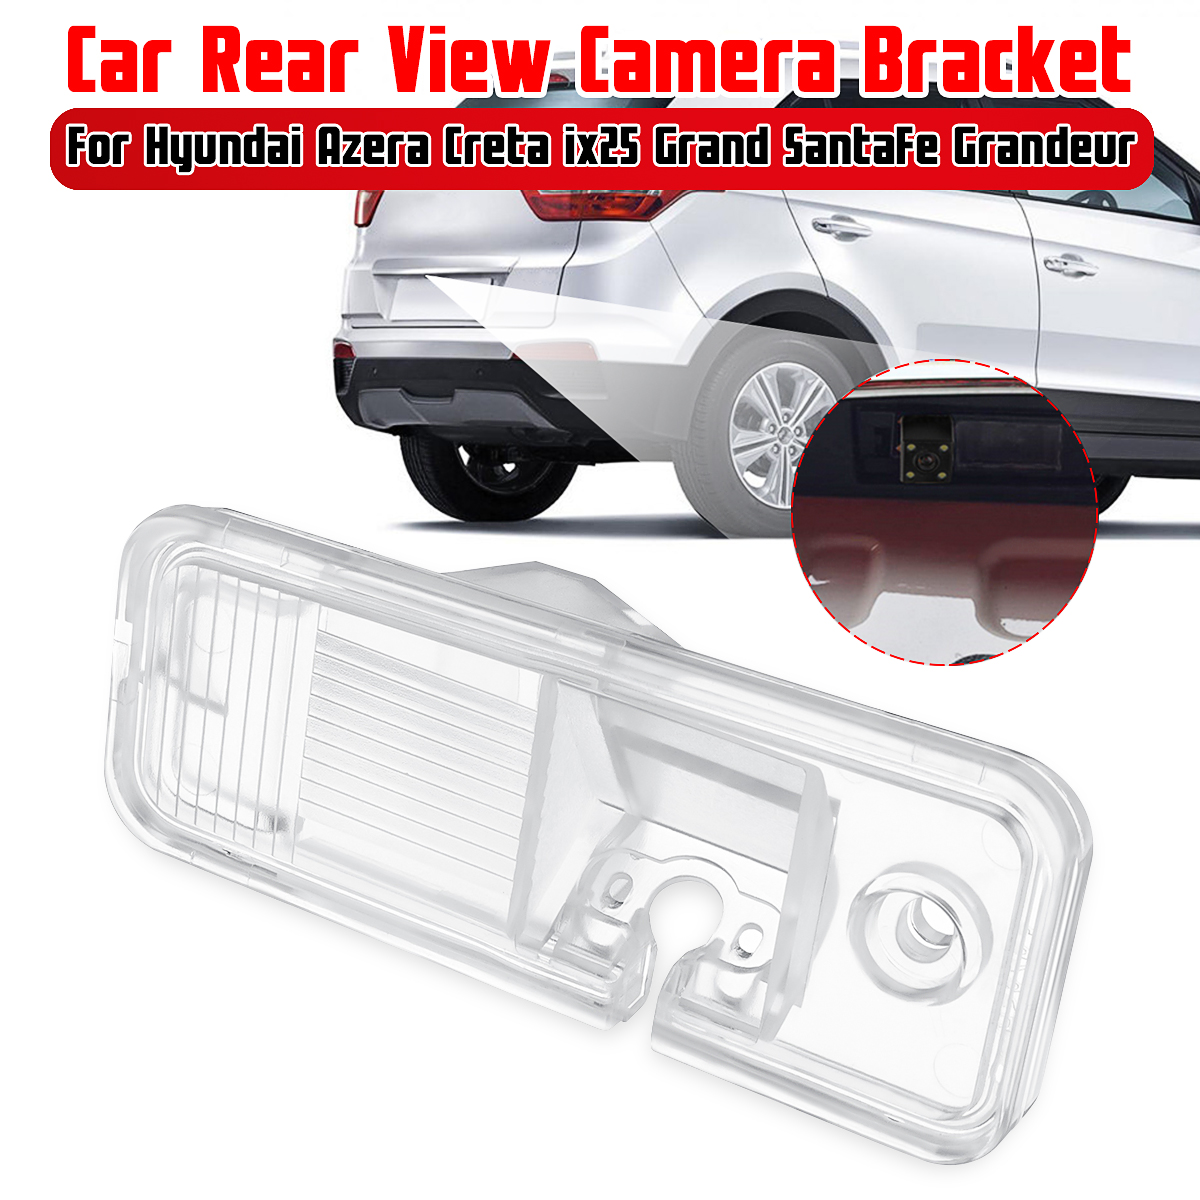 Car Parking Rear View Camera Bracket License Plate Cover Case Housing Mount For Hyundai Azera Creta Ix25 Grand SantaFe Grandeur